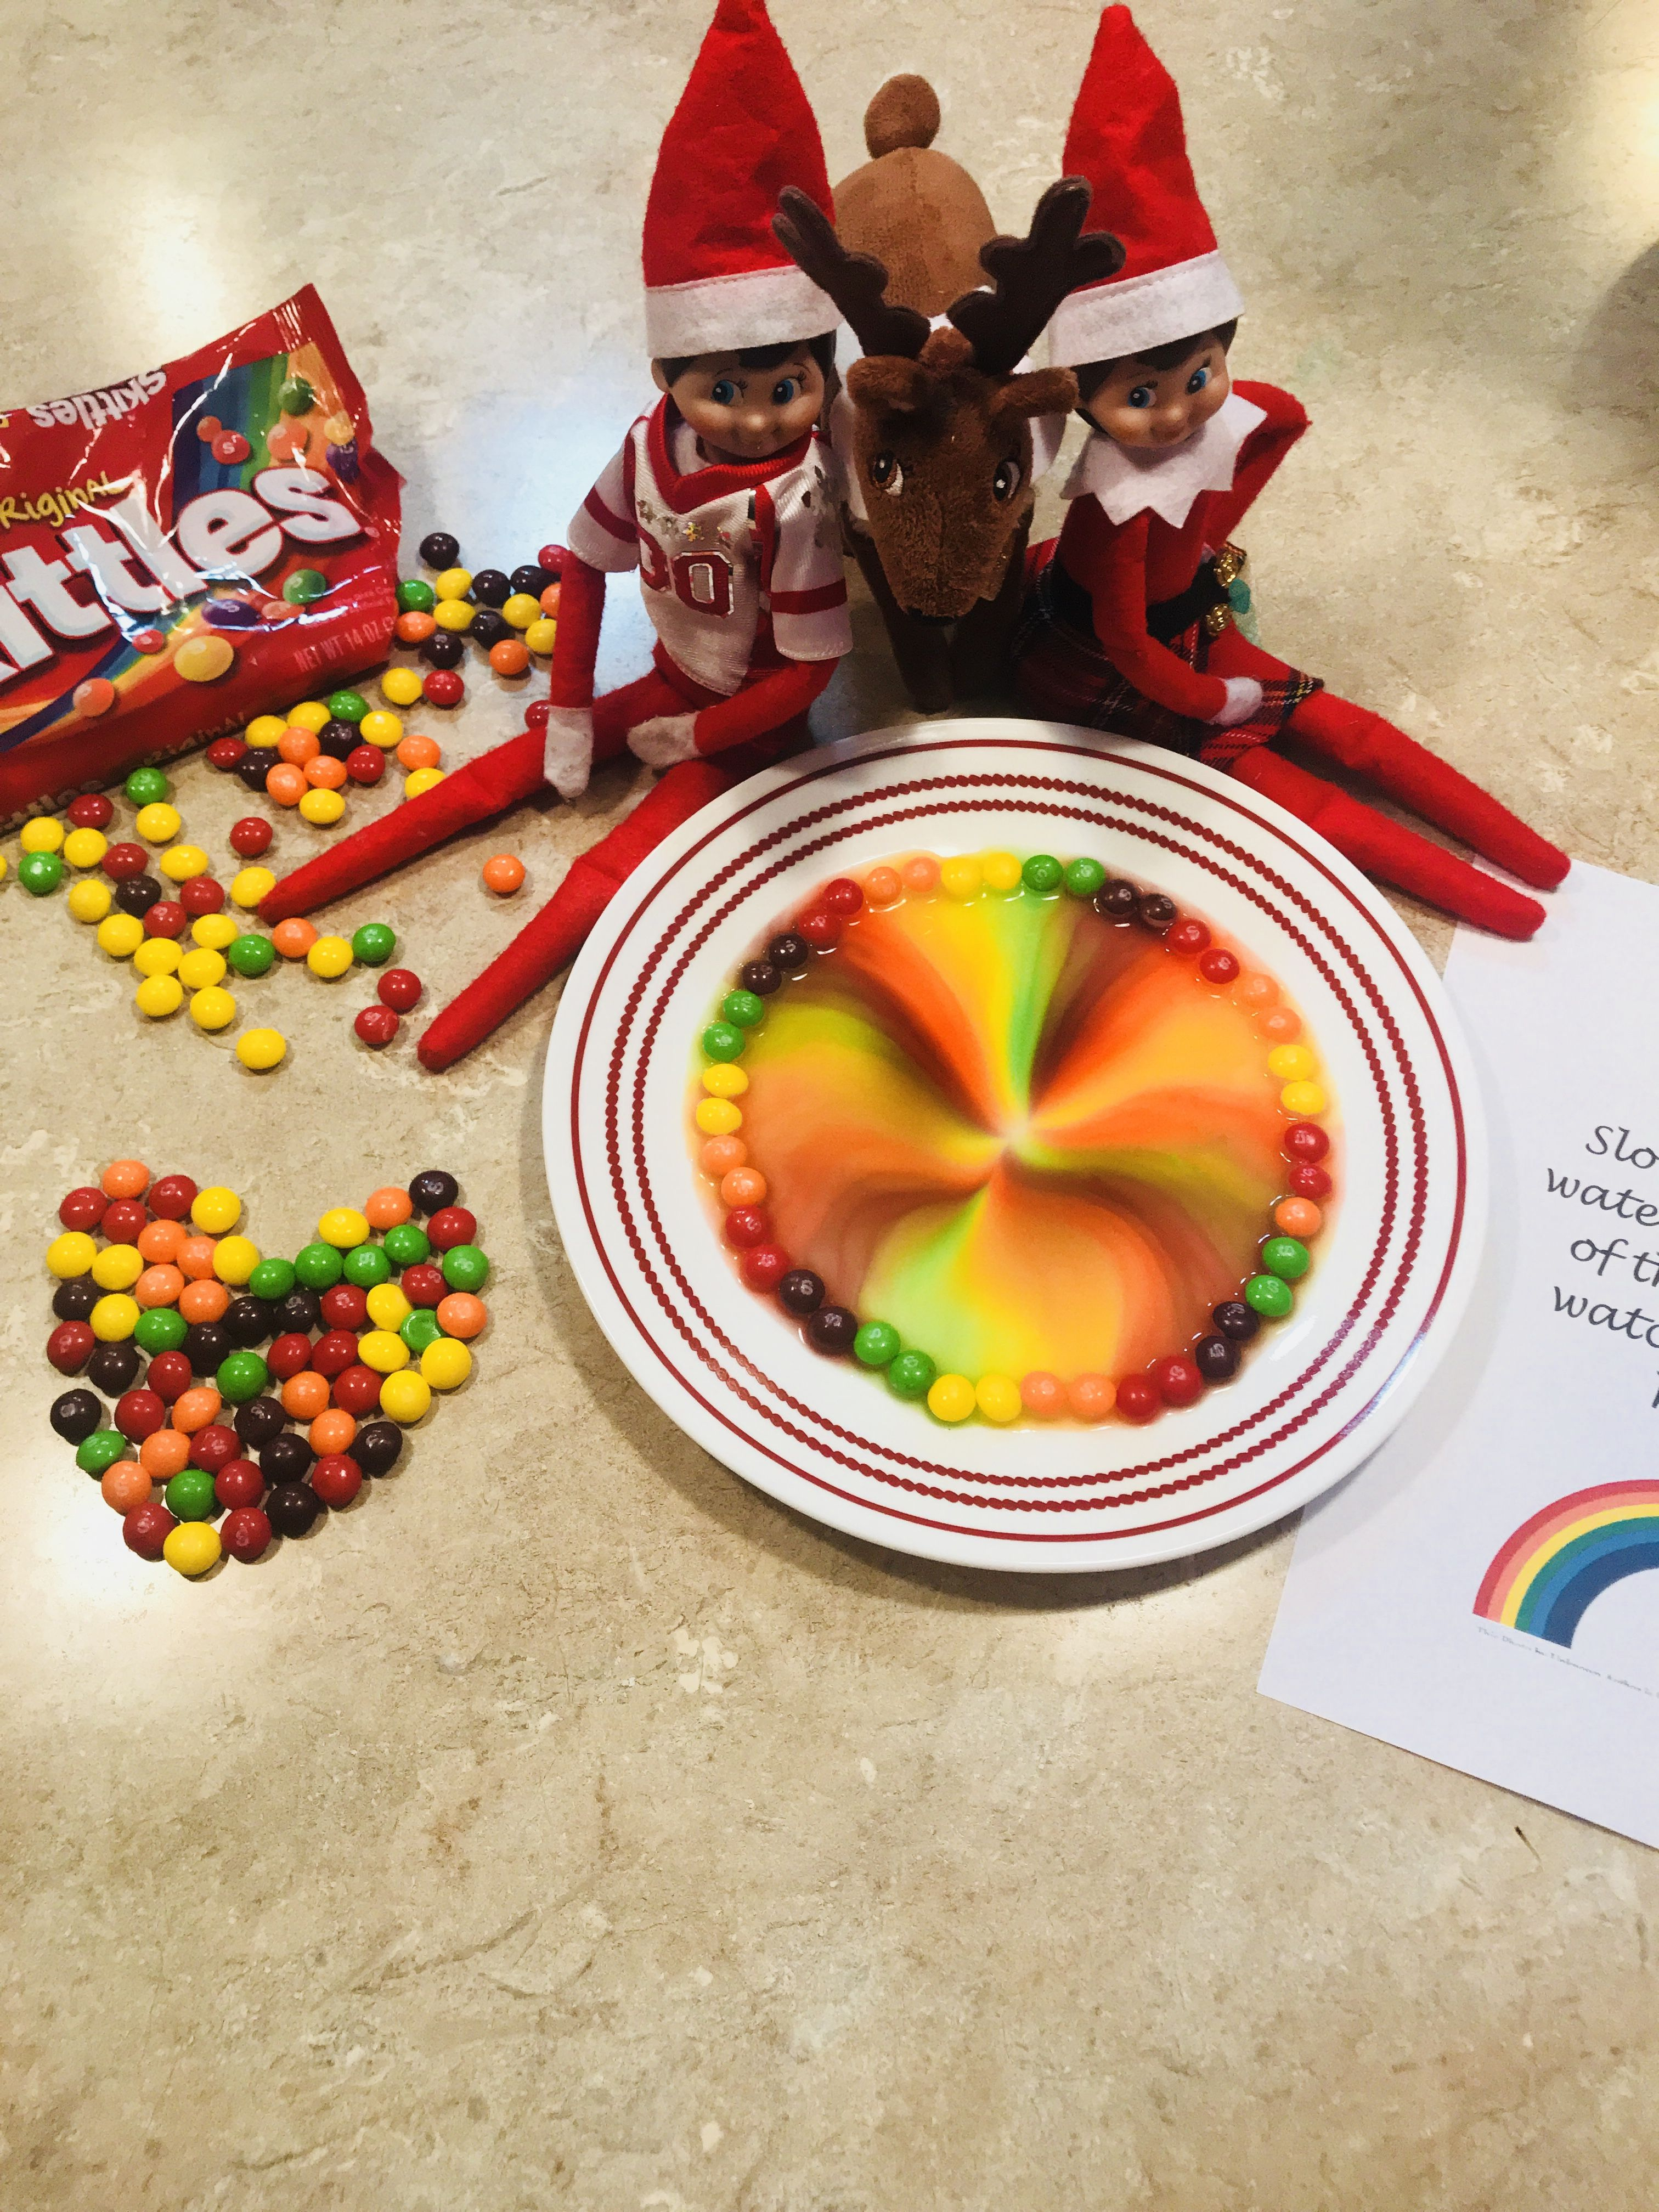 Elf On The Shelf Ideas Rainbow Magic Just Add Hot Water In The Center Of The Plate And Watch It Swirl Jingle And Snowflake Elf On The Shelf Elf Fun Elf Magic